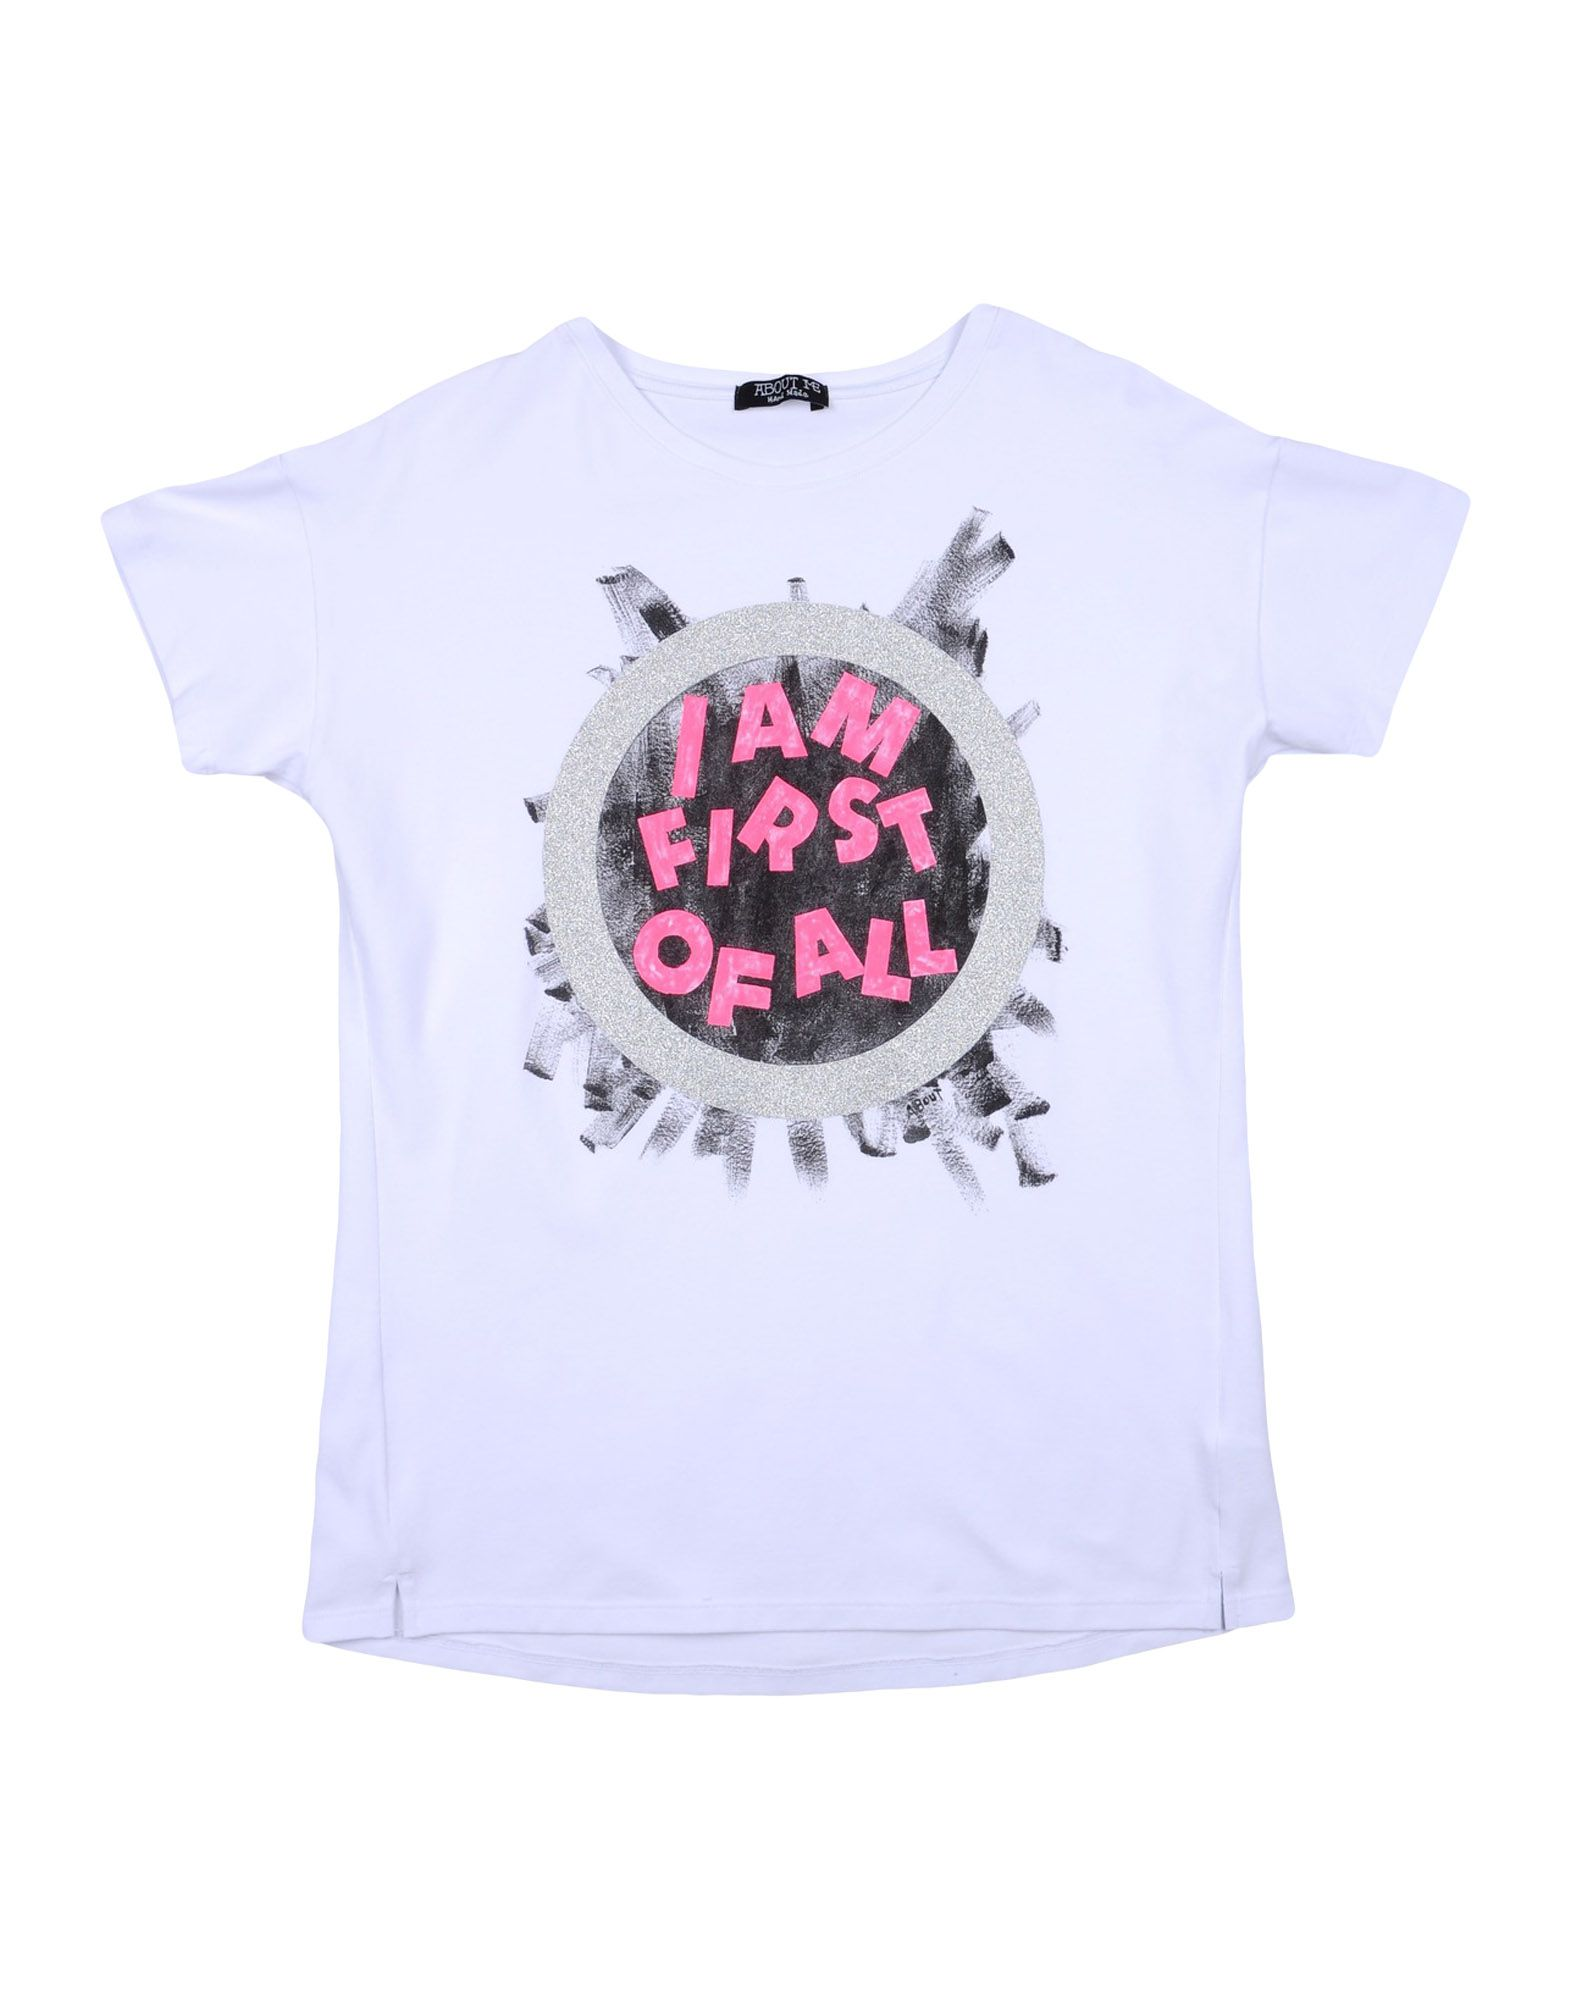 About Me Handmade Kids' T-shirts In White